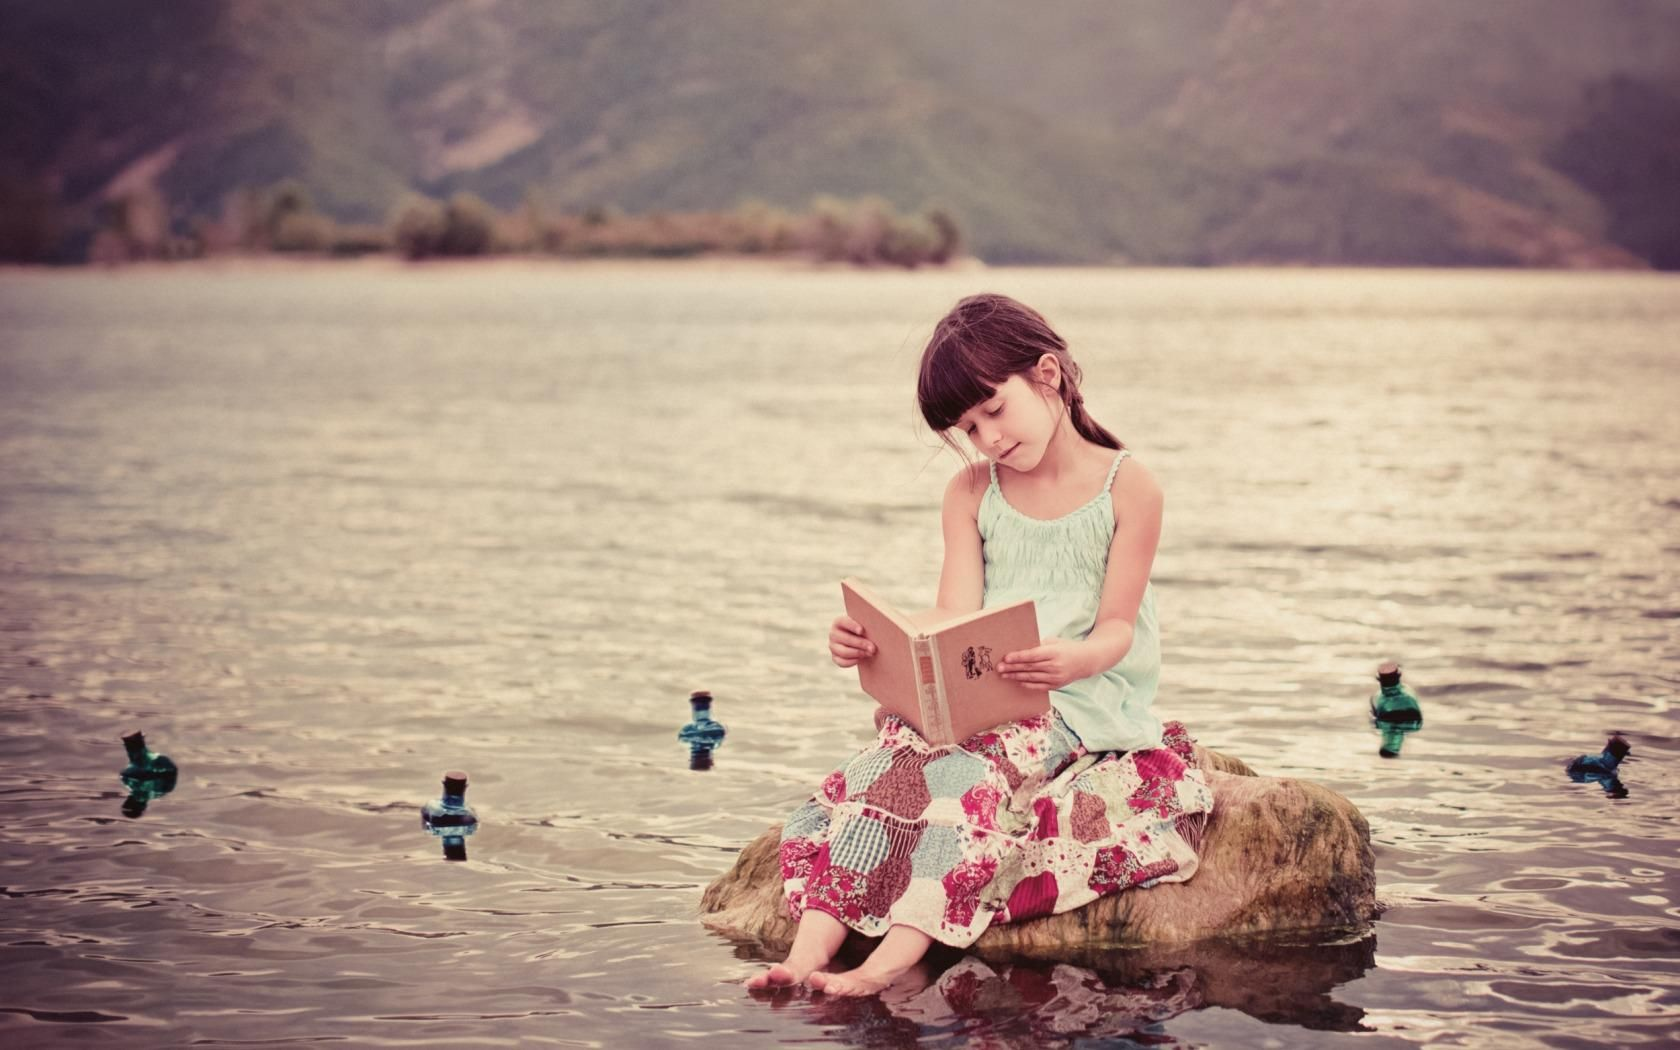 Pin By Kin On Photography Book Wallpaper Girl Reading